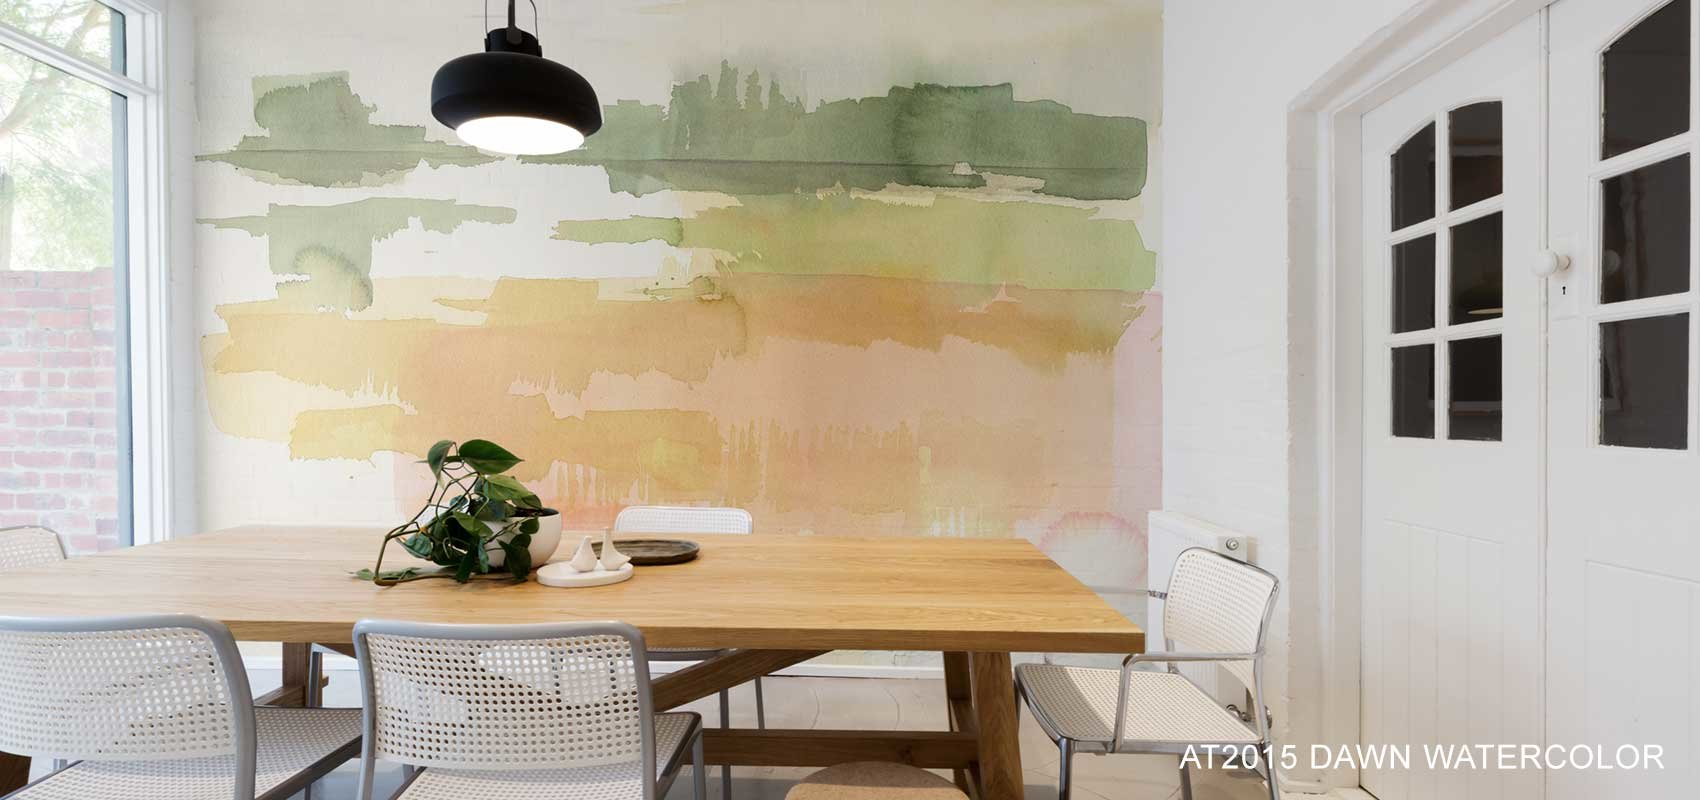 Dawn Watercolor Wallpaper Mural